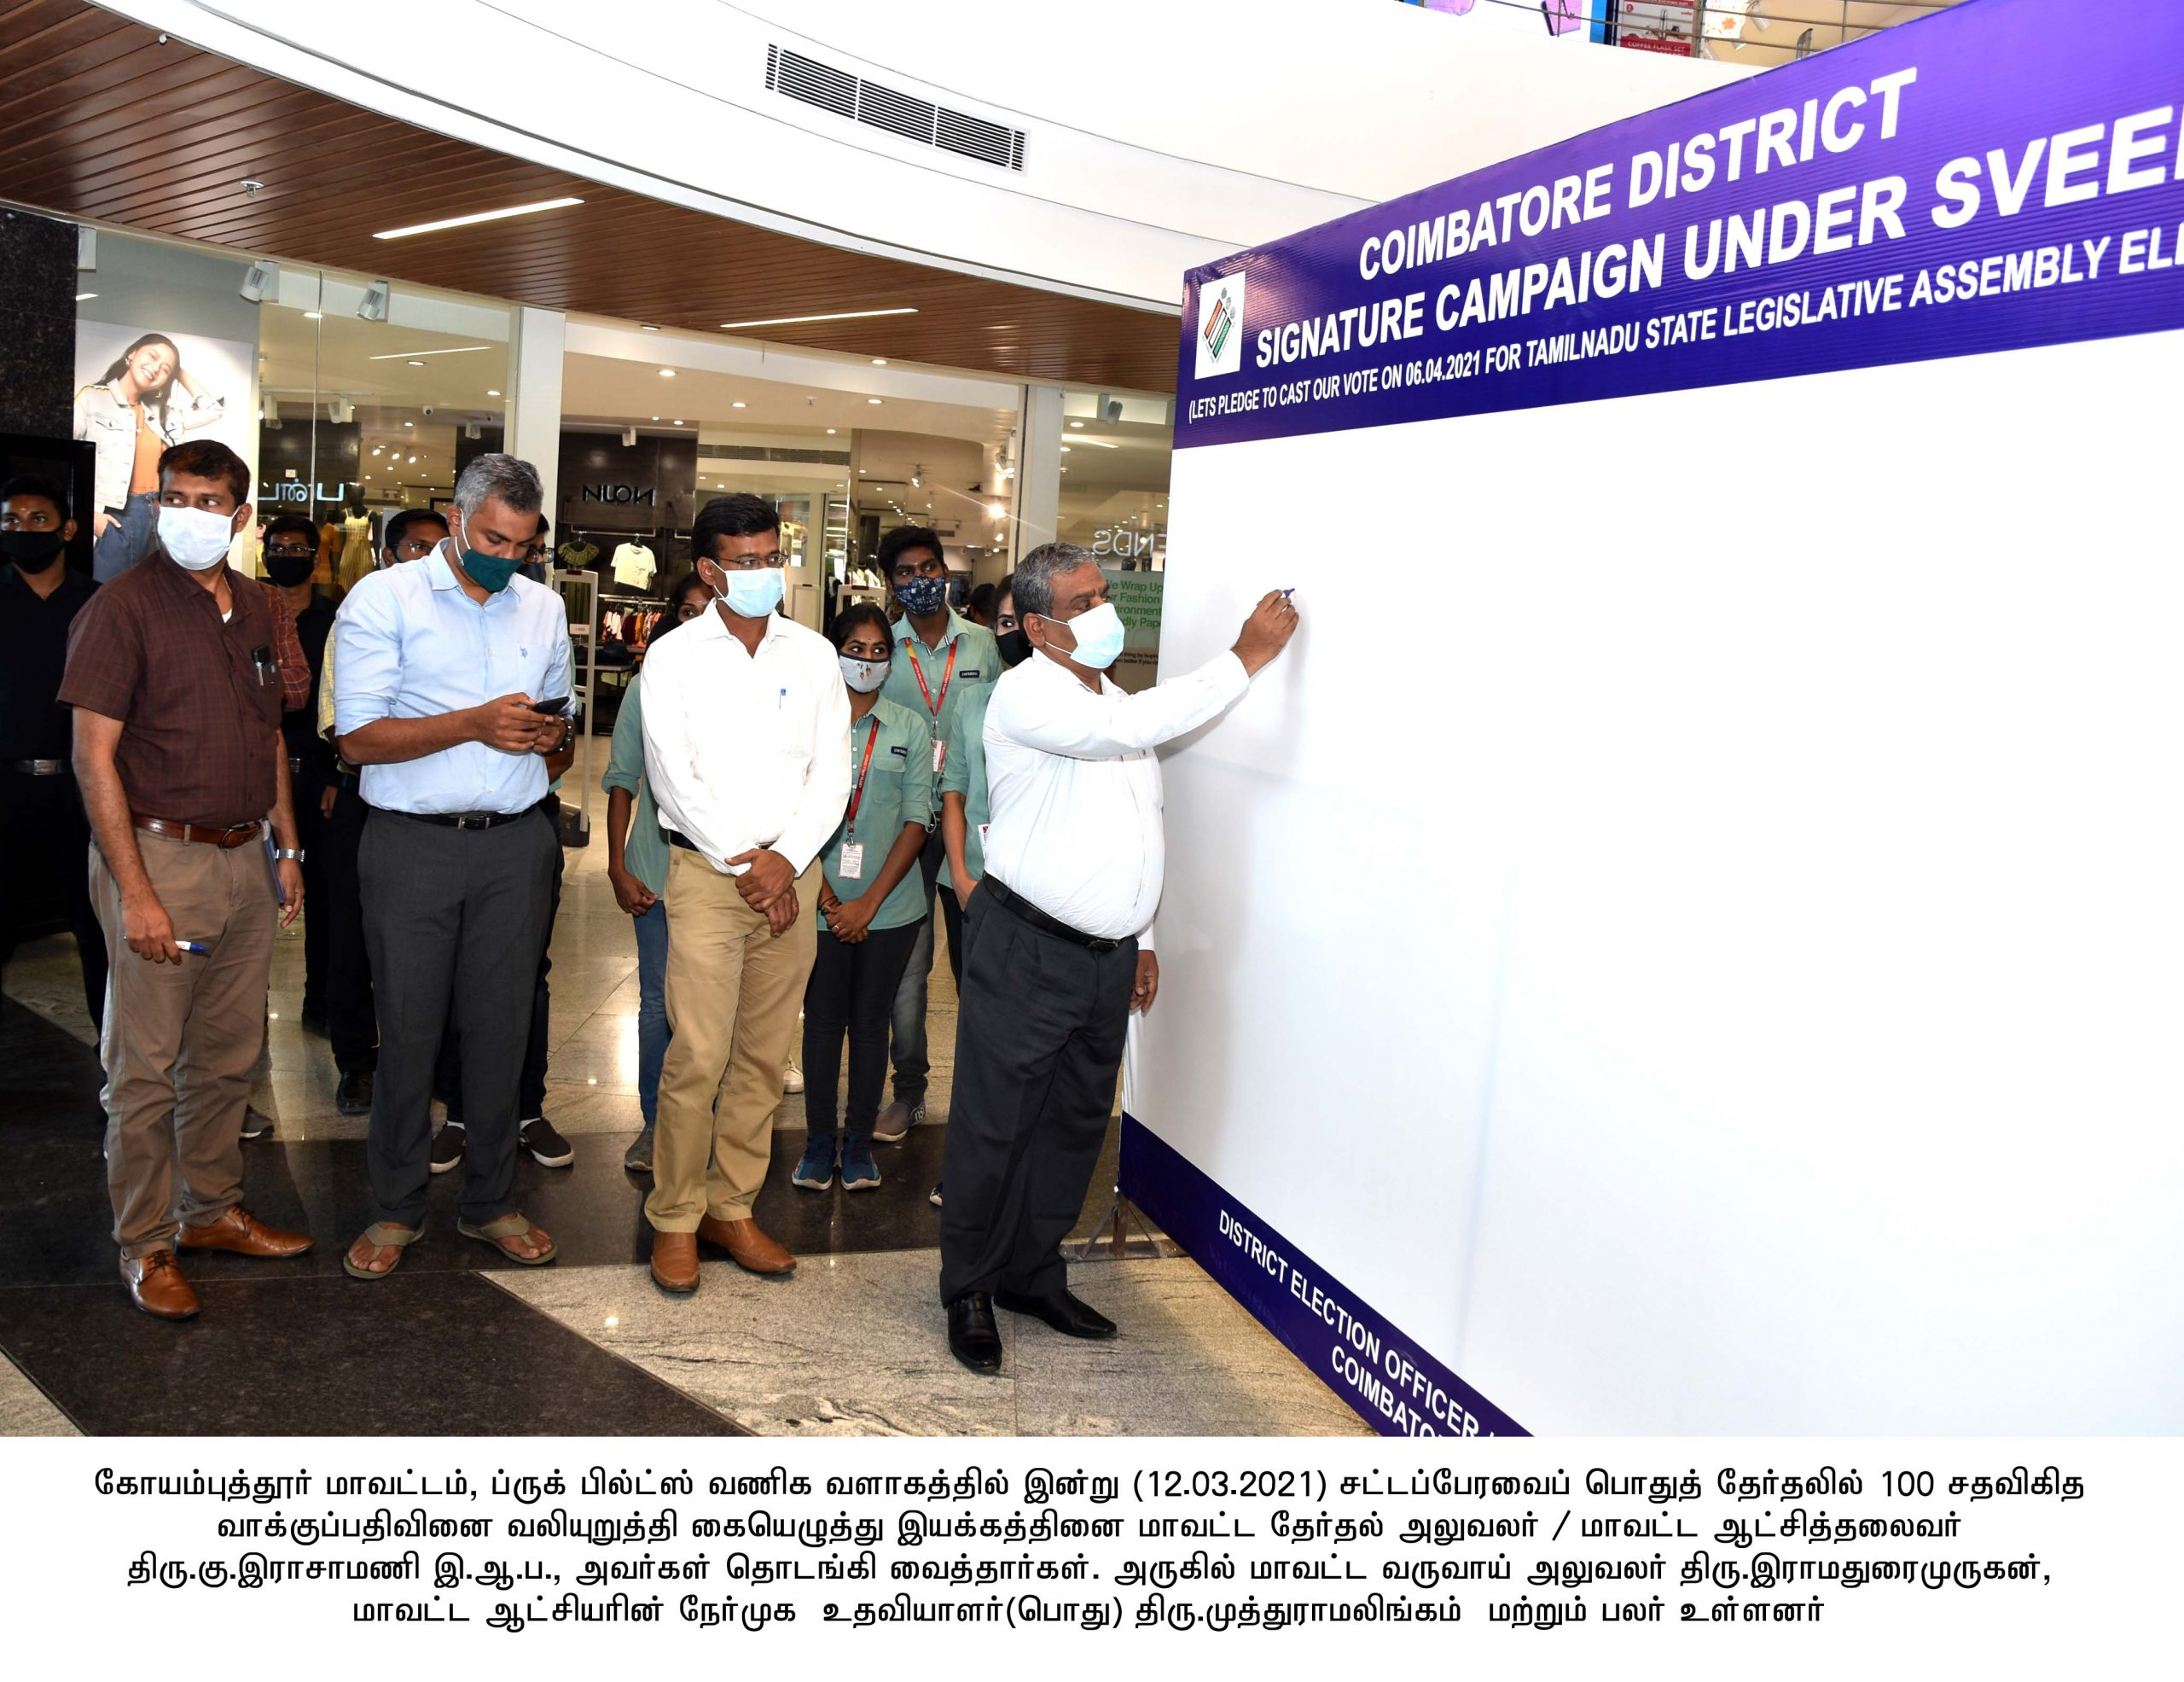 Tamil Nadu State Legislative Assembly Election - Signature Campaign under SVEEP and Giant Baloon launched